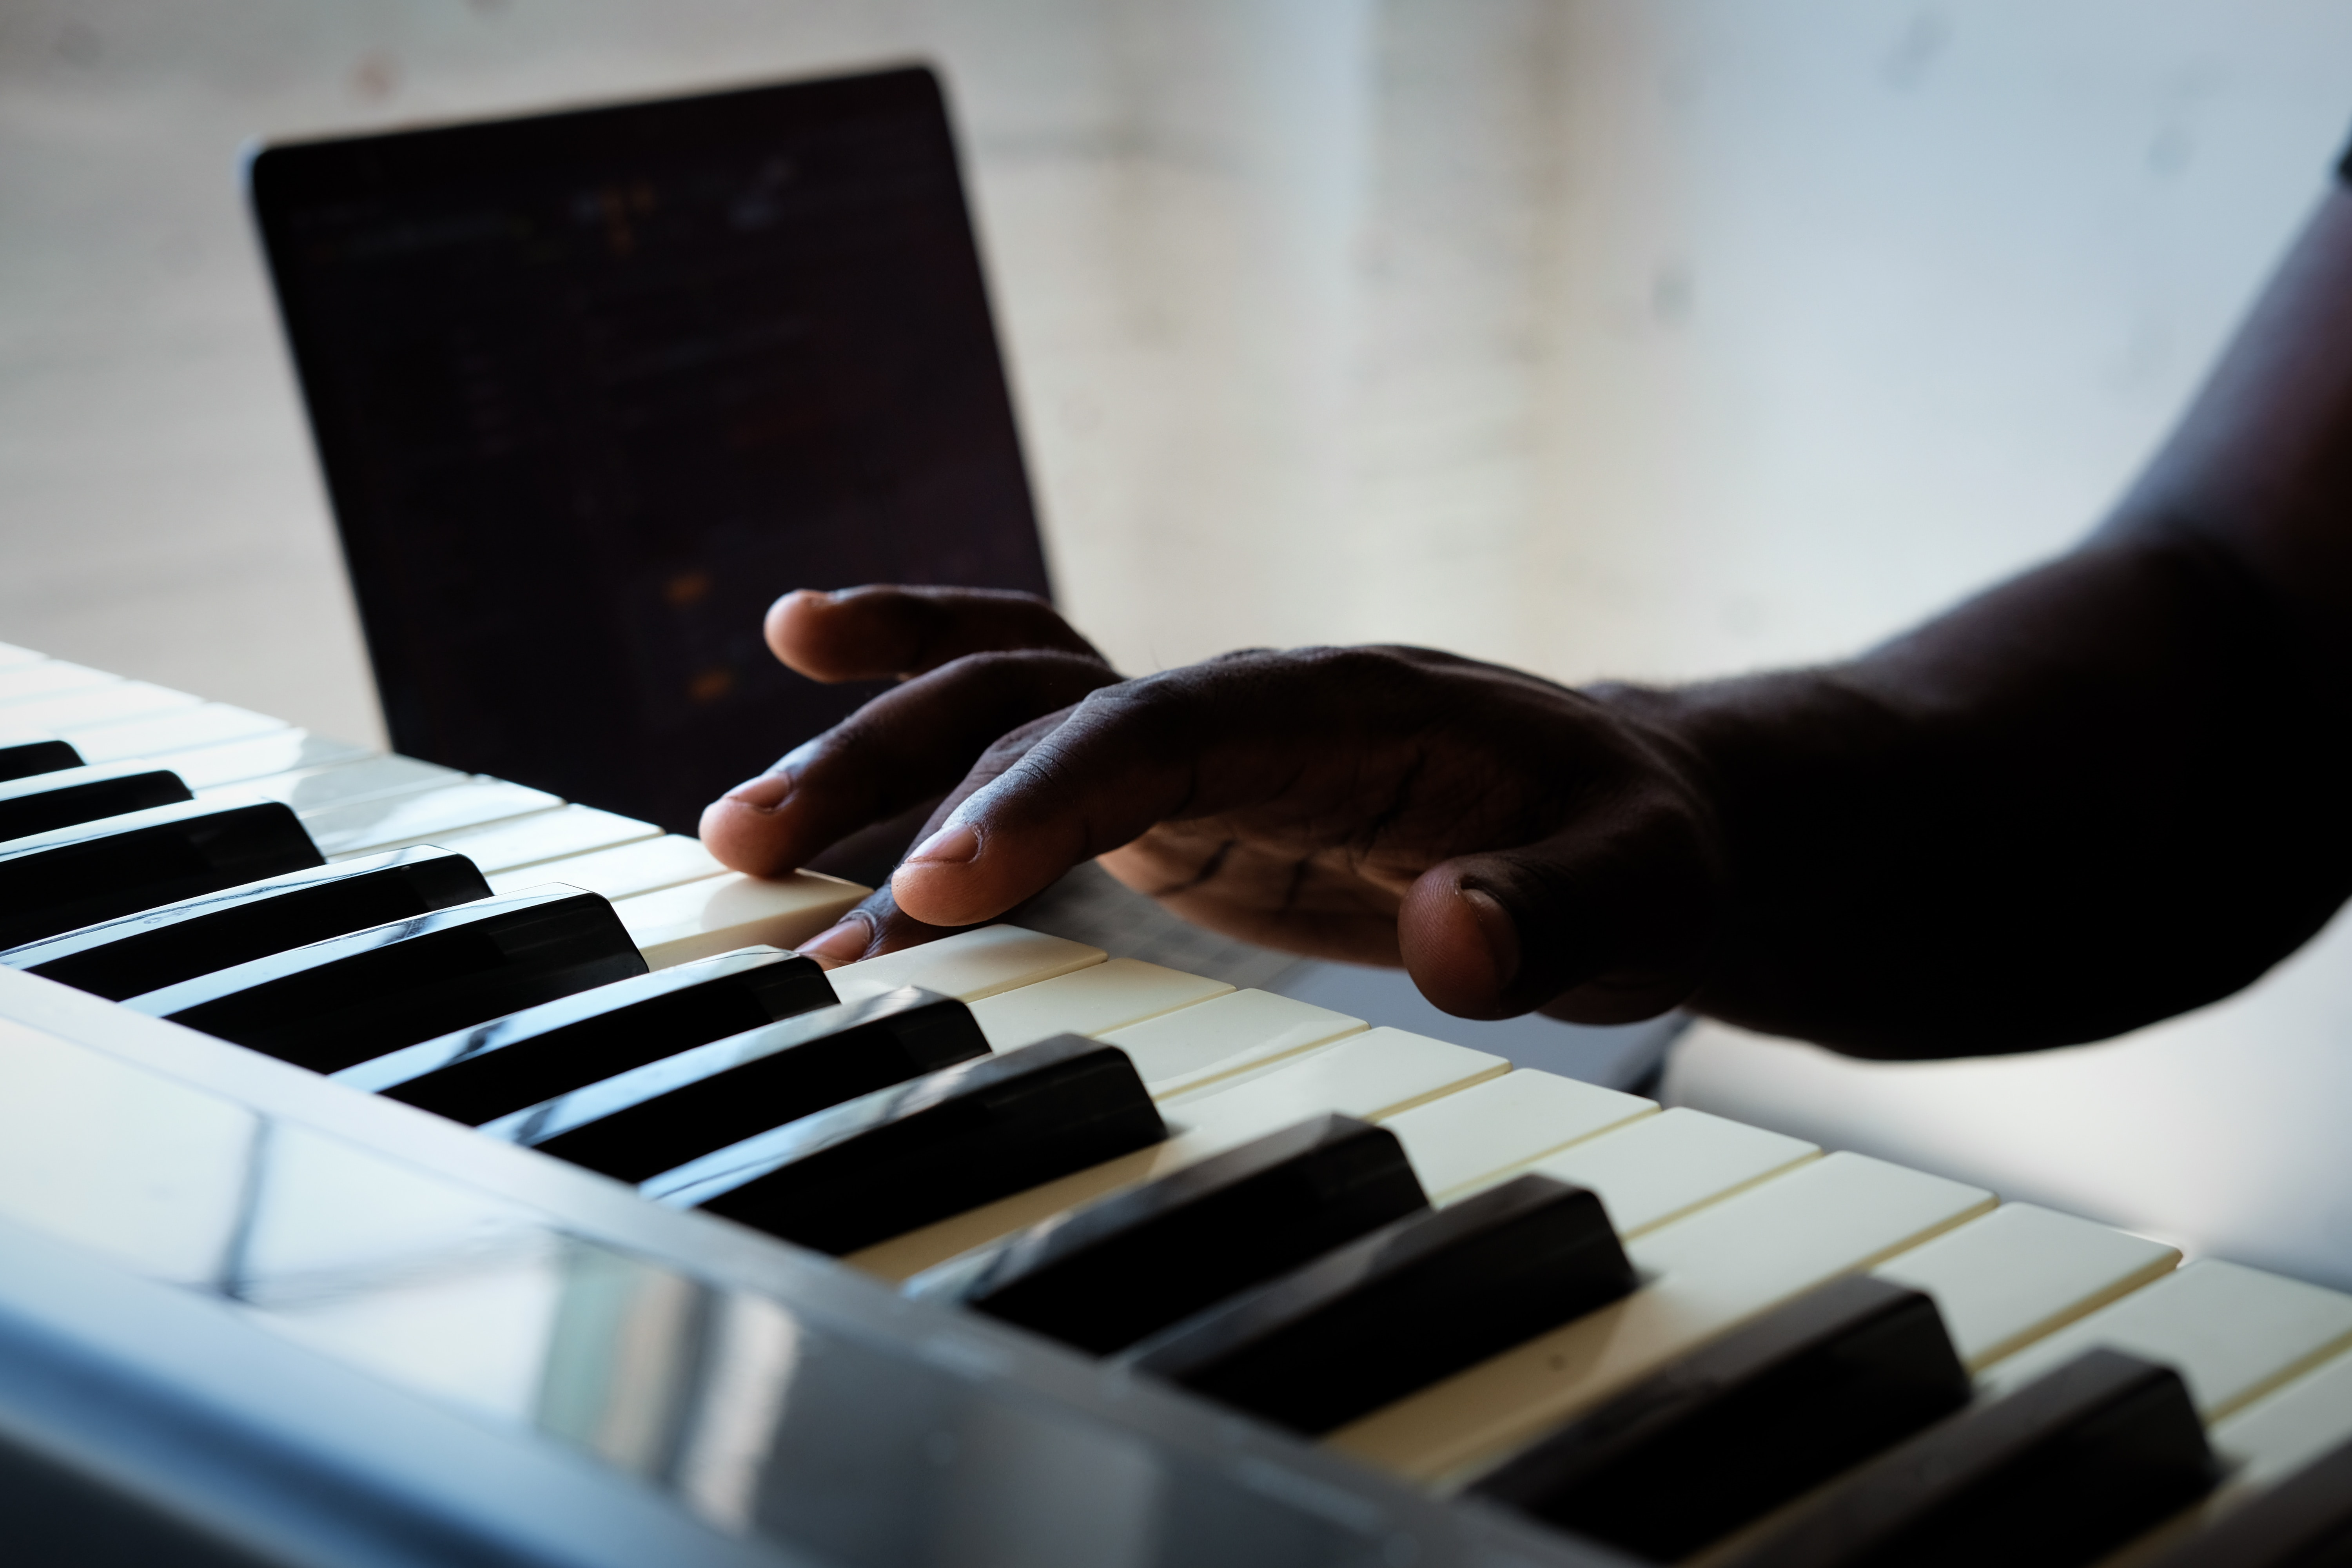 Close-up of a hand playing the piano. Playing a musical instrument can help motor skills and improve coordination.